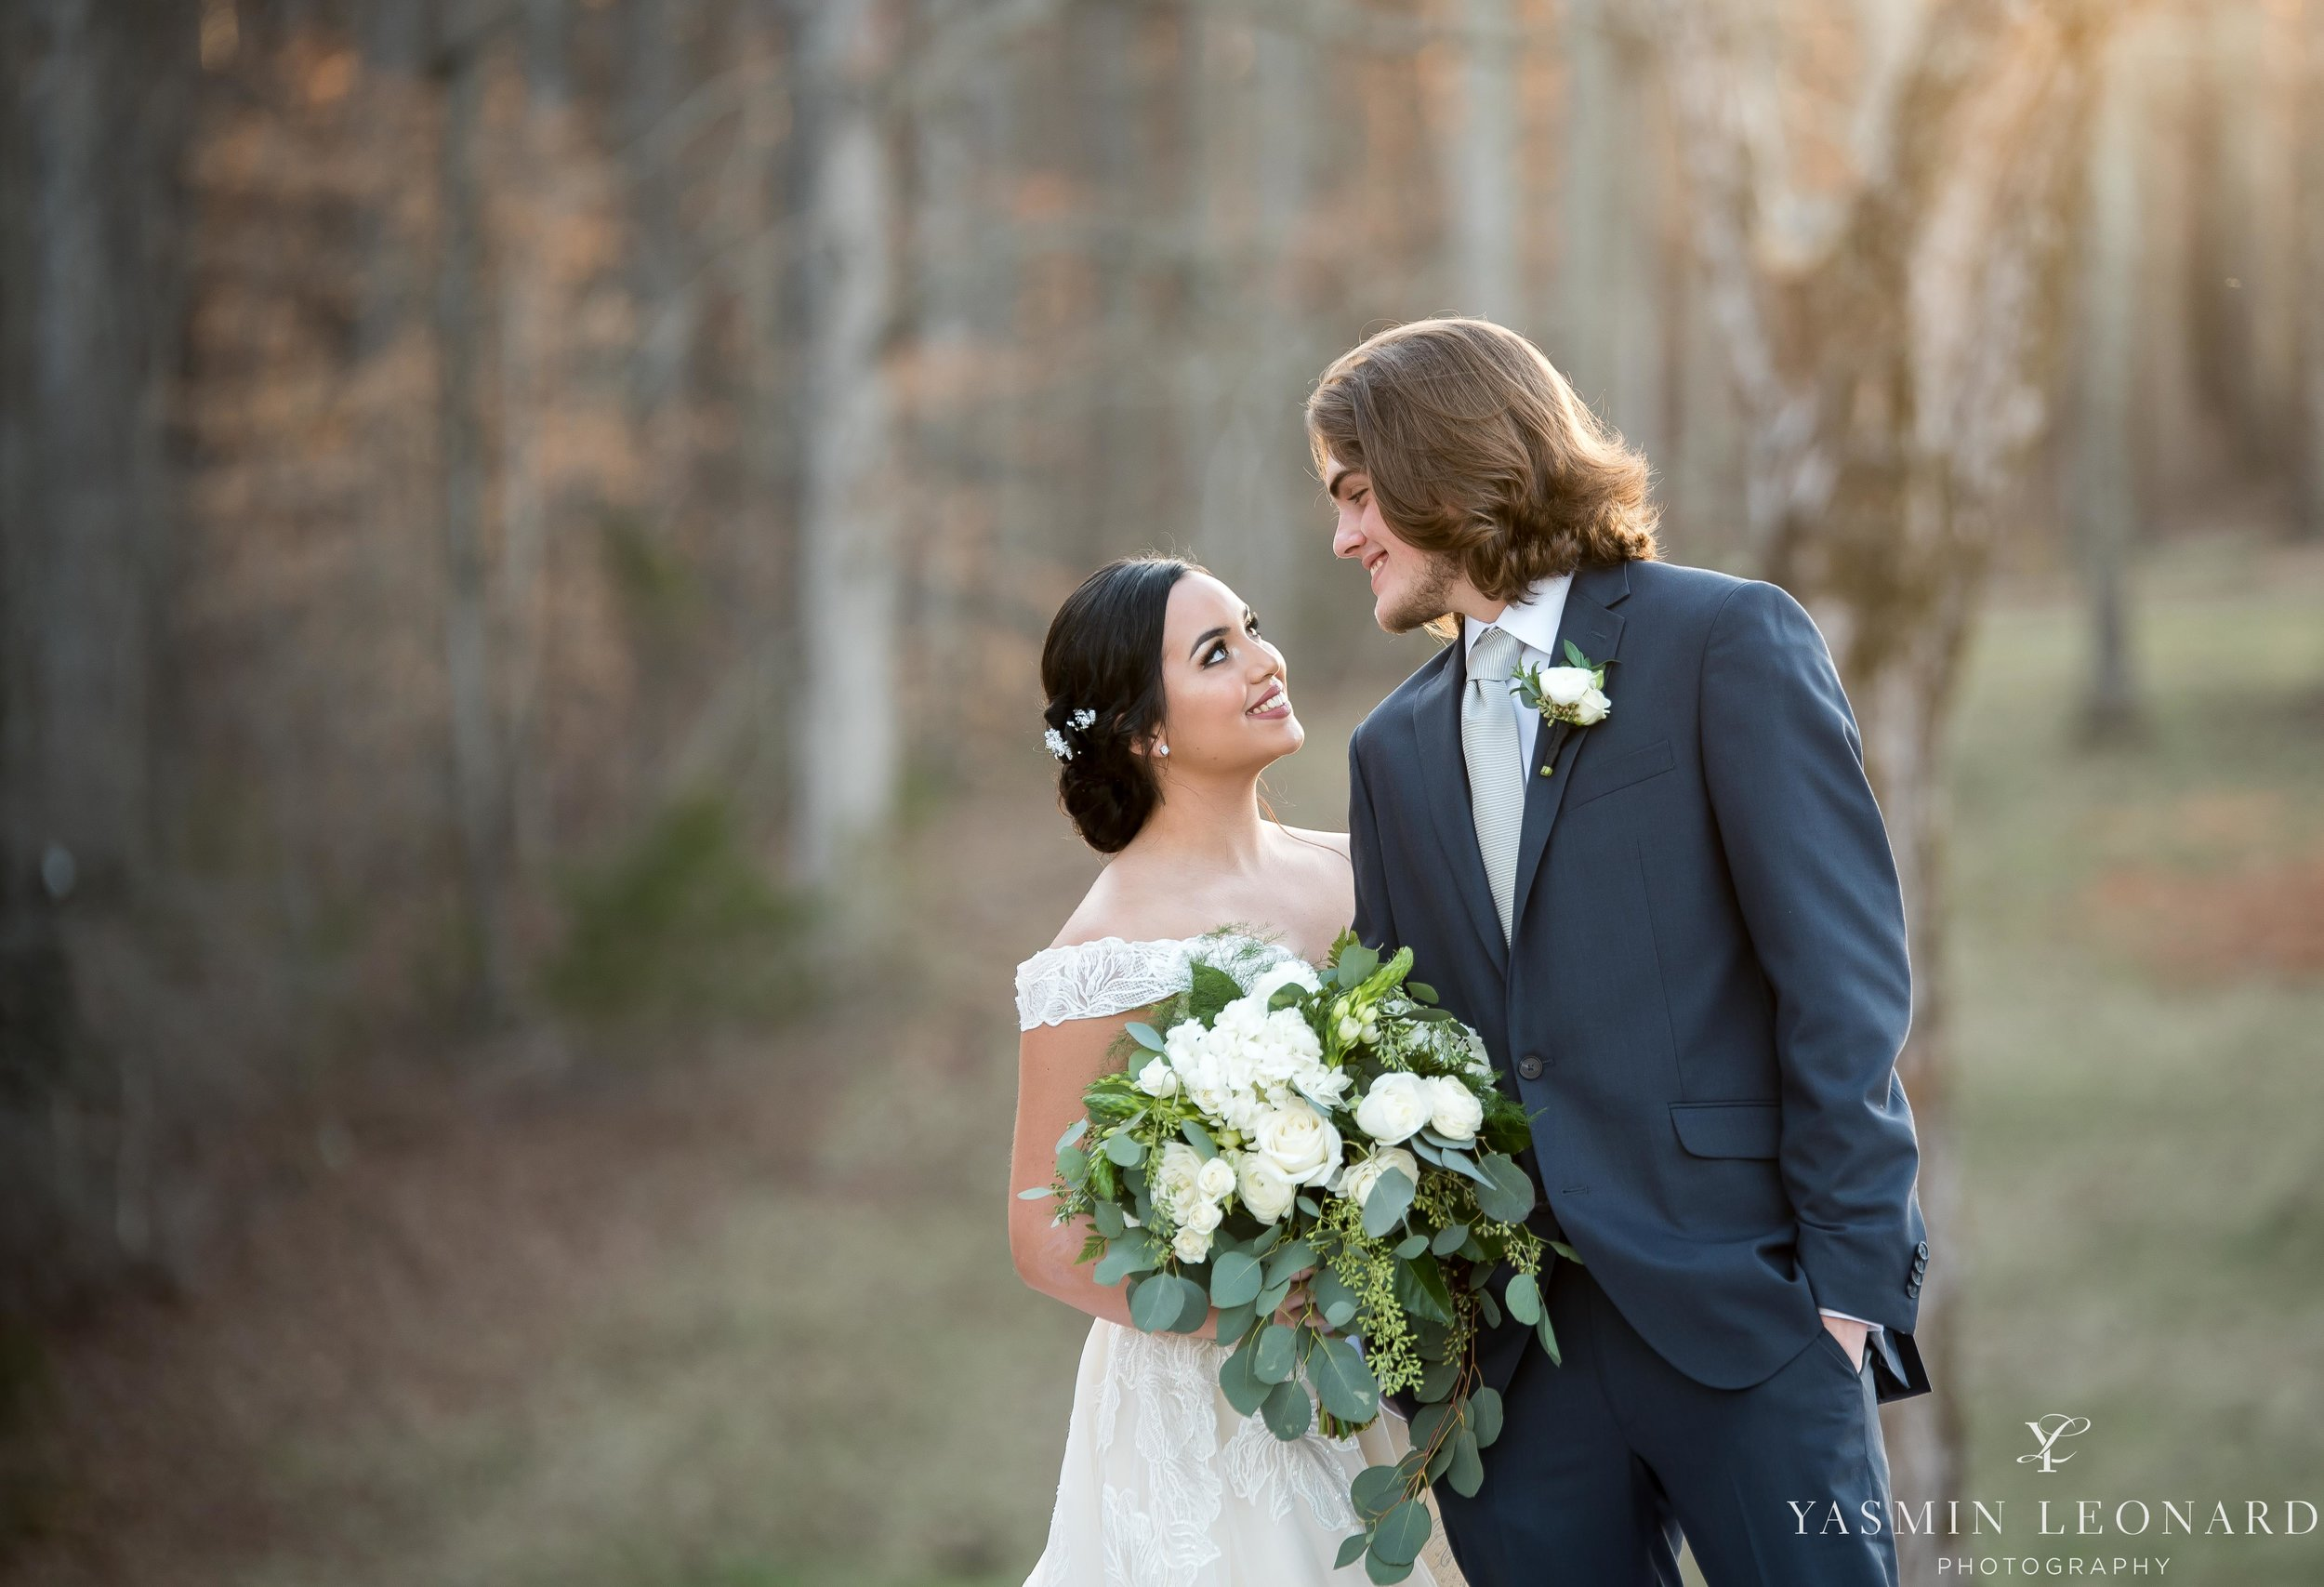 Old Homeplace Vineyard - Grits and Glitter - Dashing Dames Bridal Boutique - Just Priceless - Yasmin Leonard Photography - High Point Weddings - NC Weddings - NC Wedding Venues - High Point Jewelers - NC Wines - NC Vineyards - Cupcake Cuties-93.jpg